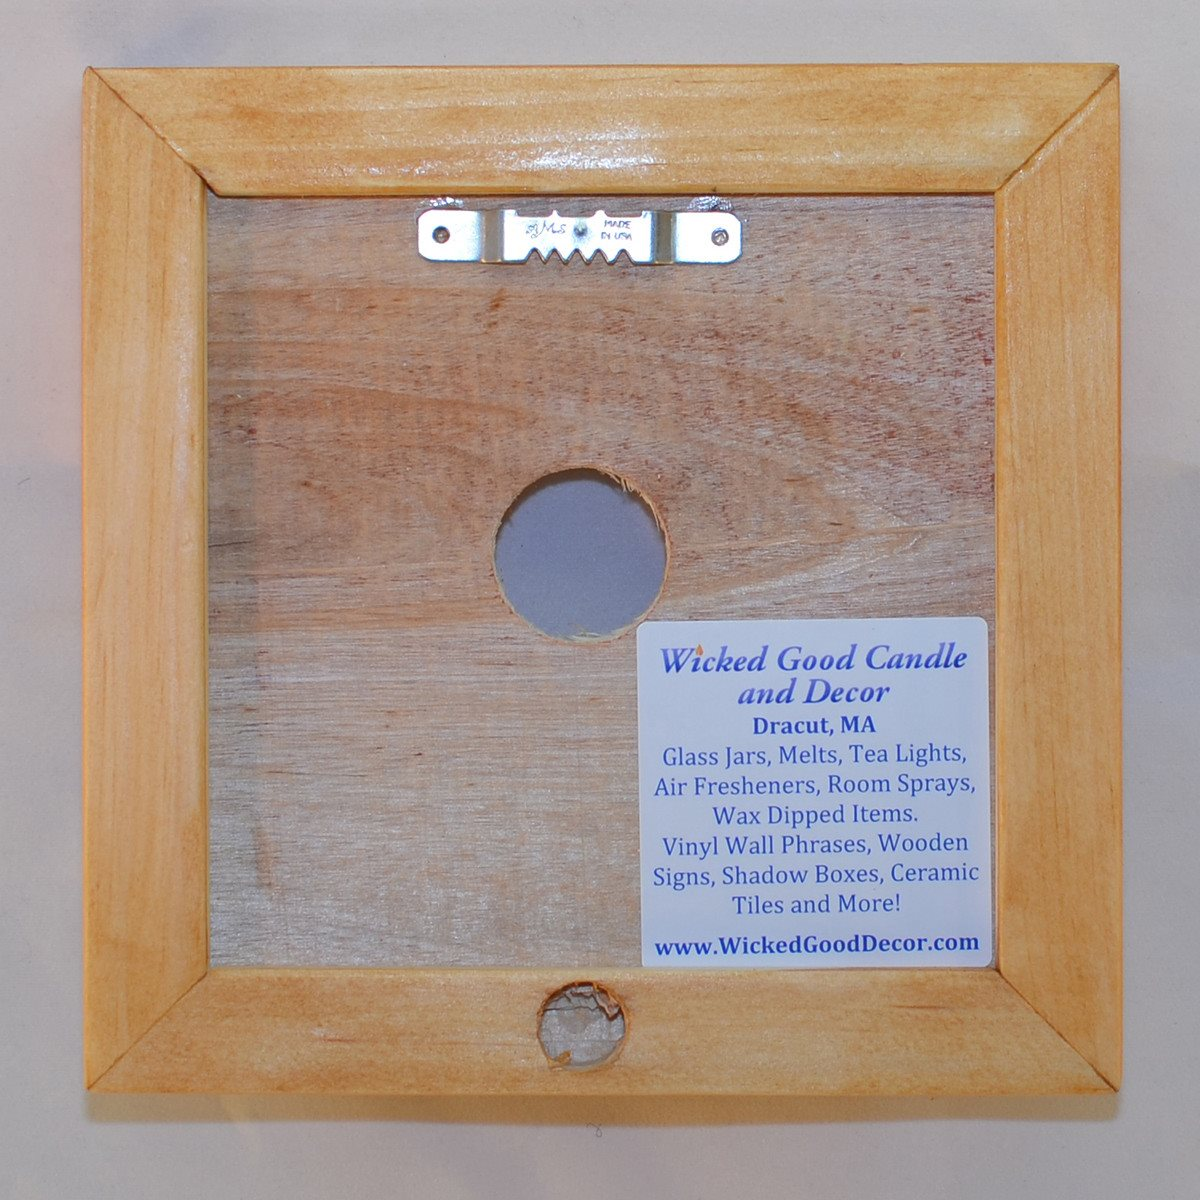 Decorative ceramic tile frame single tile wooden frame decorative ceramic tile frame single tile wooden frame wicked good candle and decor dailygadgetfo Images